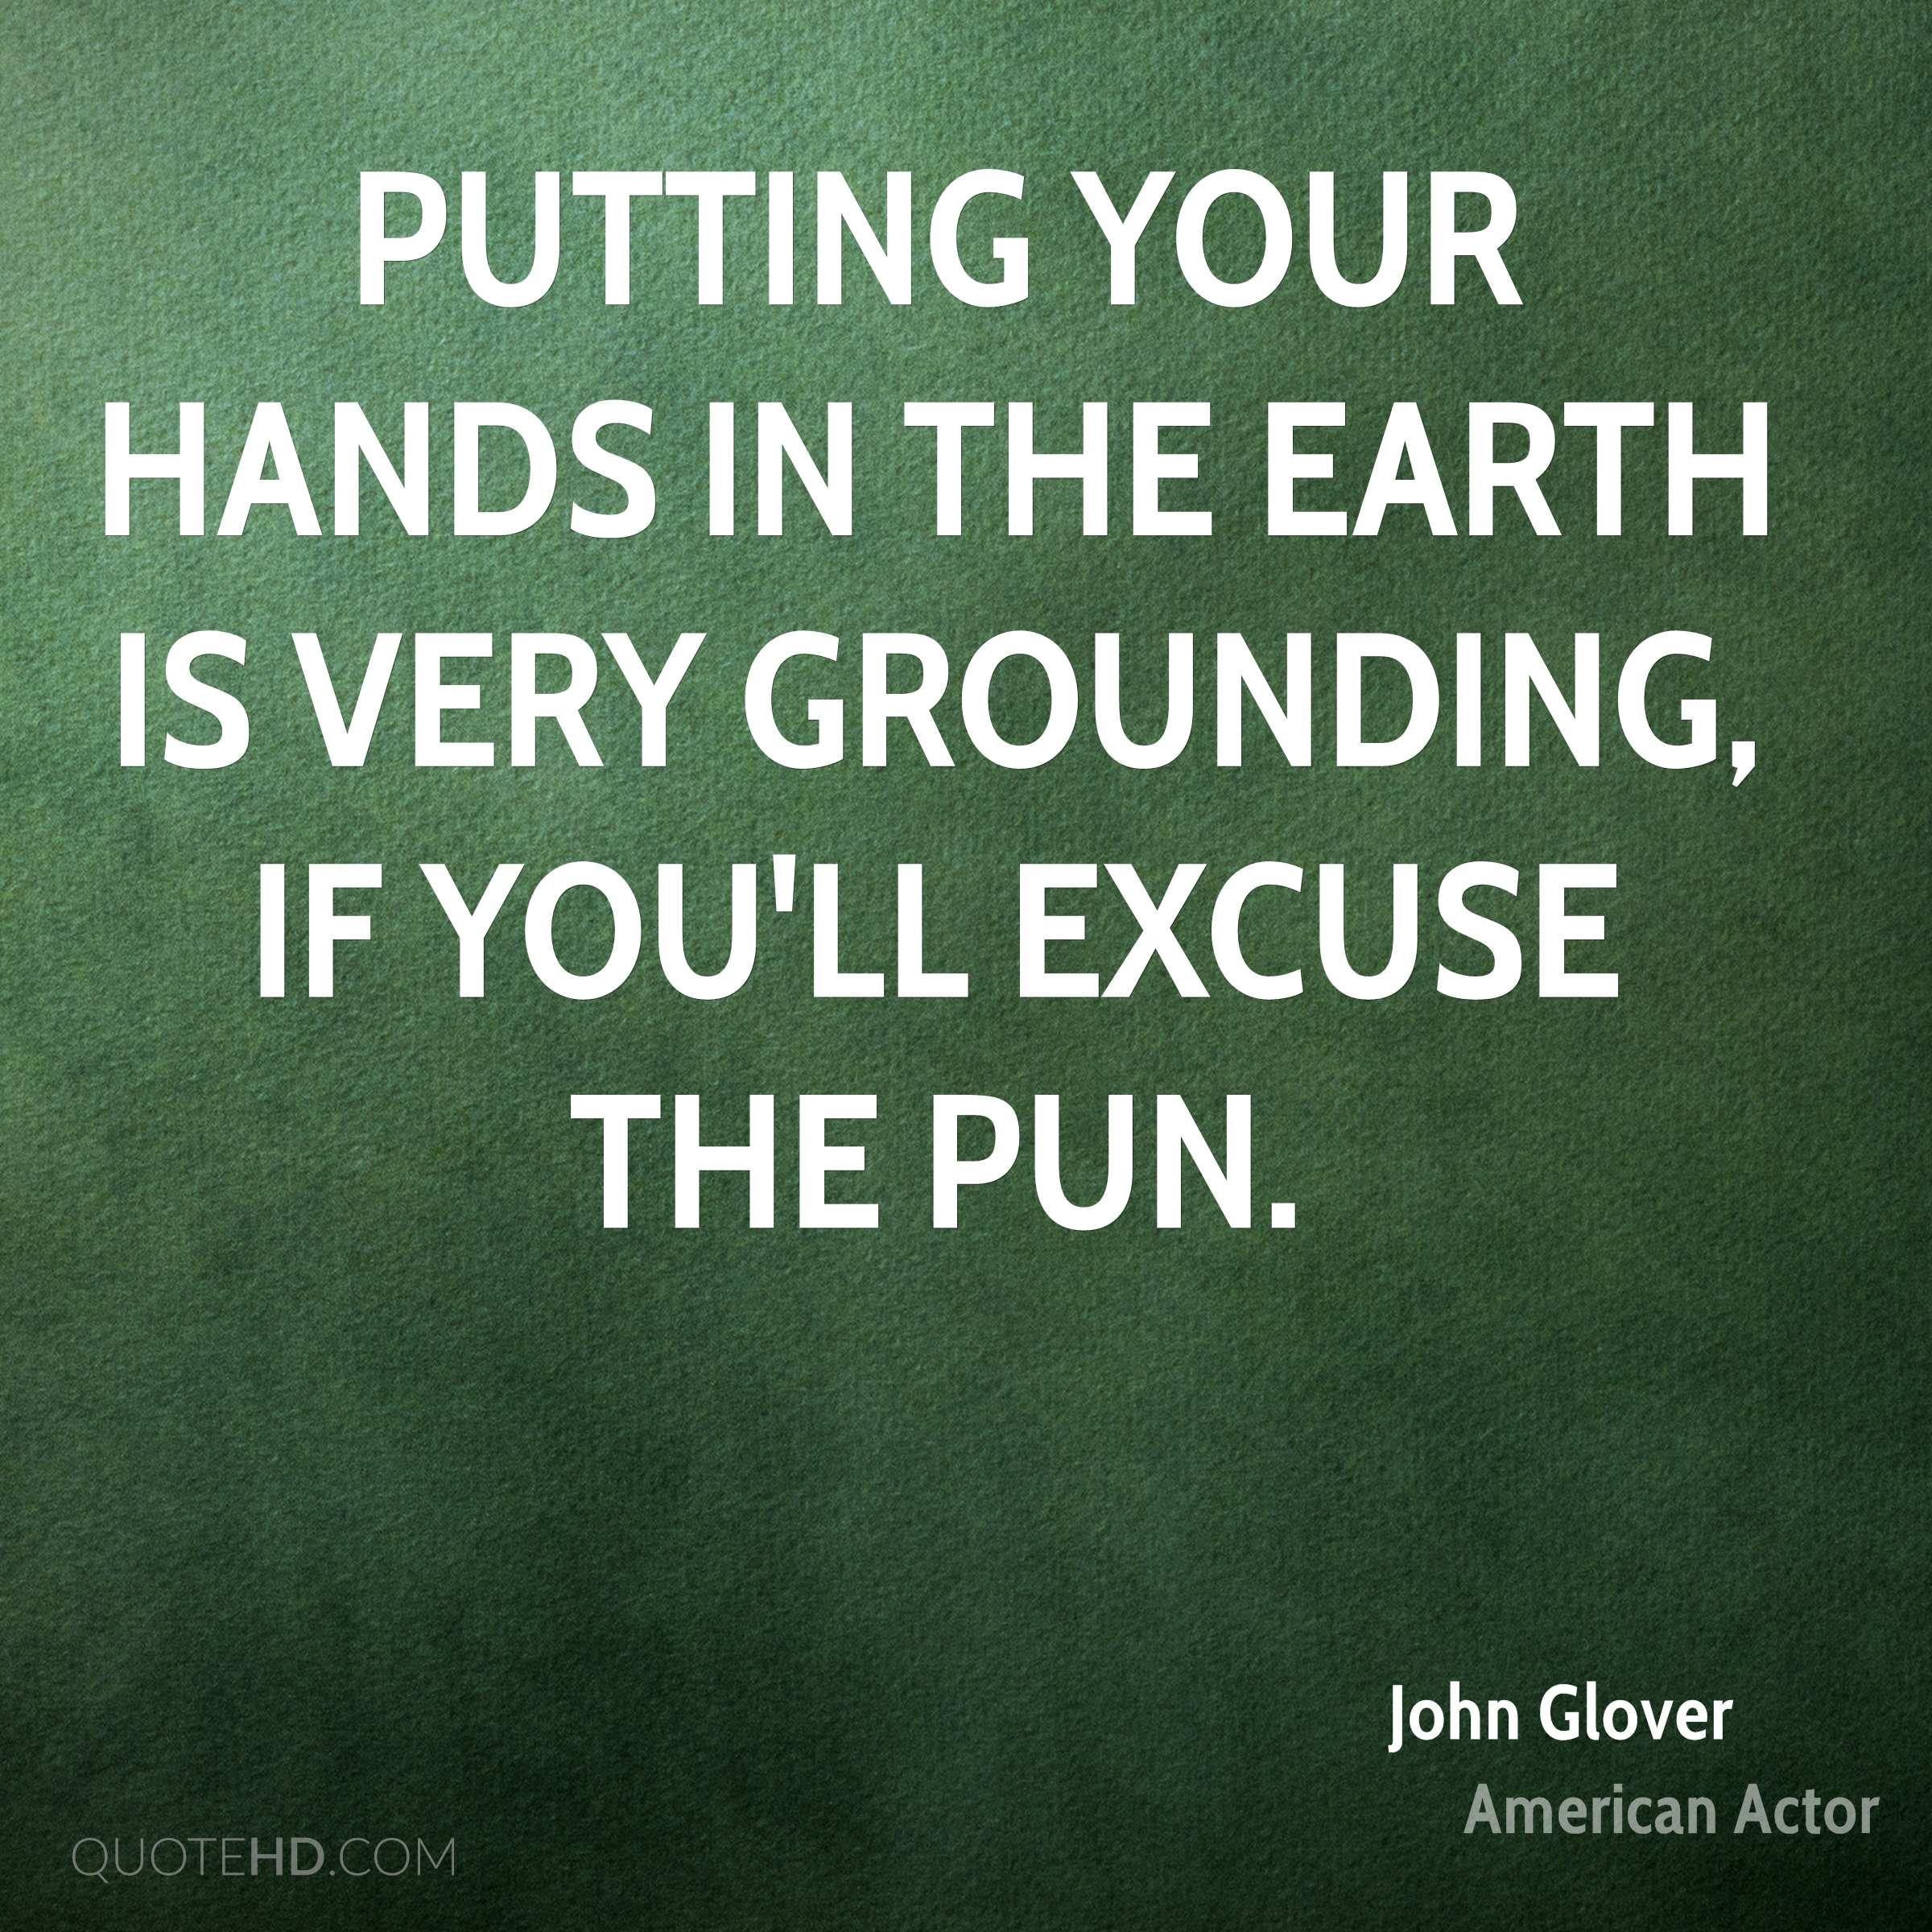 Putting your hands in the earth is very grounding, if you'll excuse the pun.